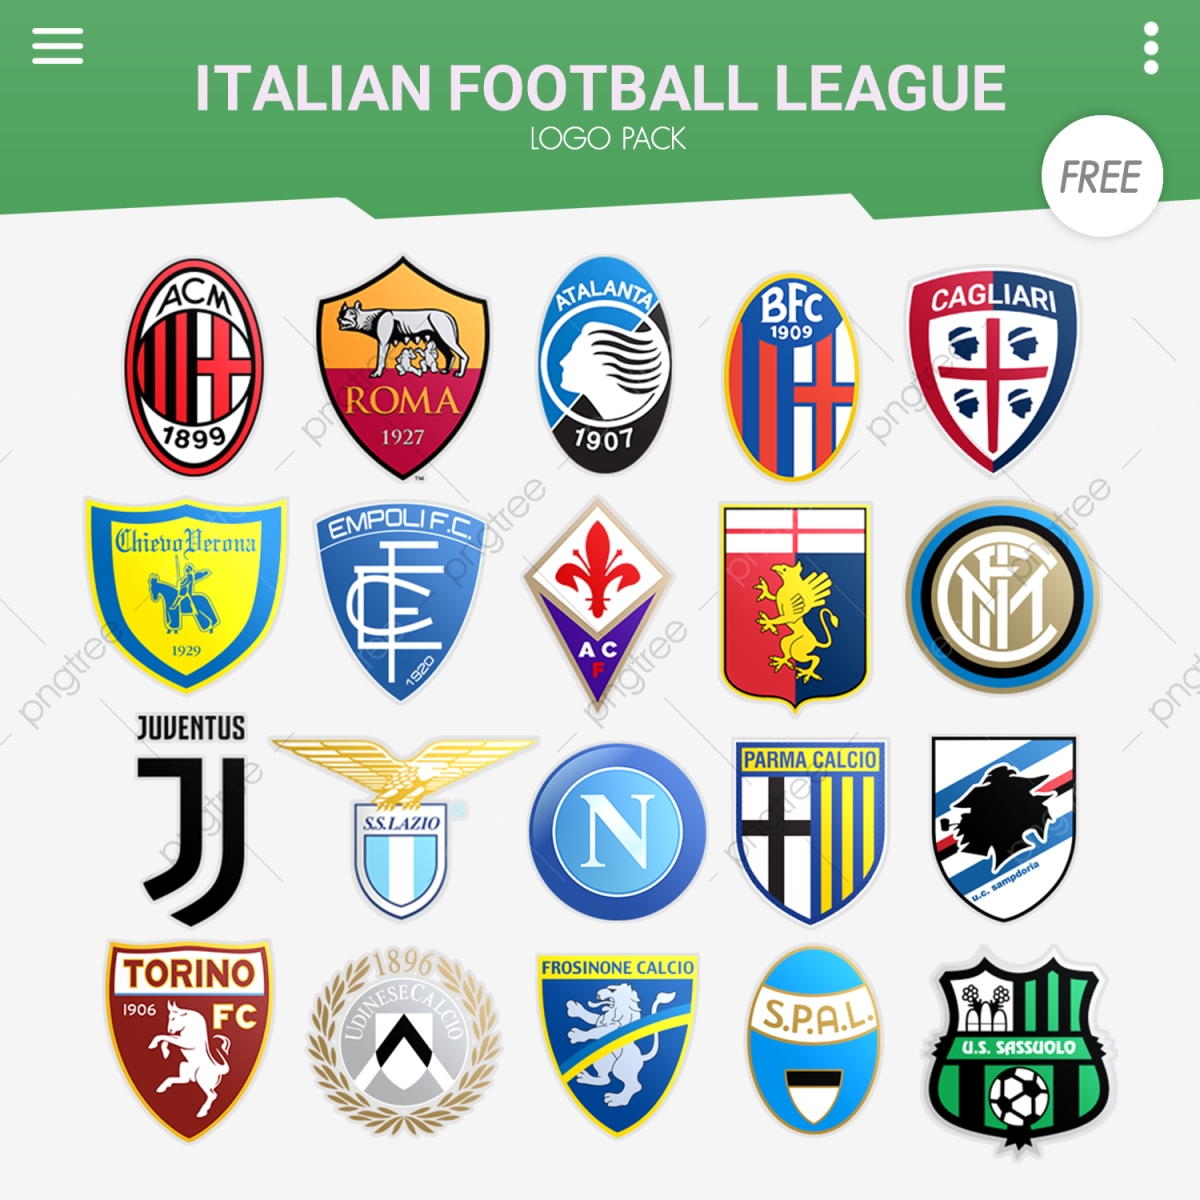 Italian Football League Logo Pack Italy Italian Calcio Serie A Png Transparent Clipart Image And Psd File For Free Download